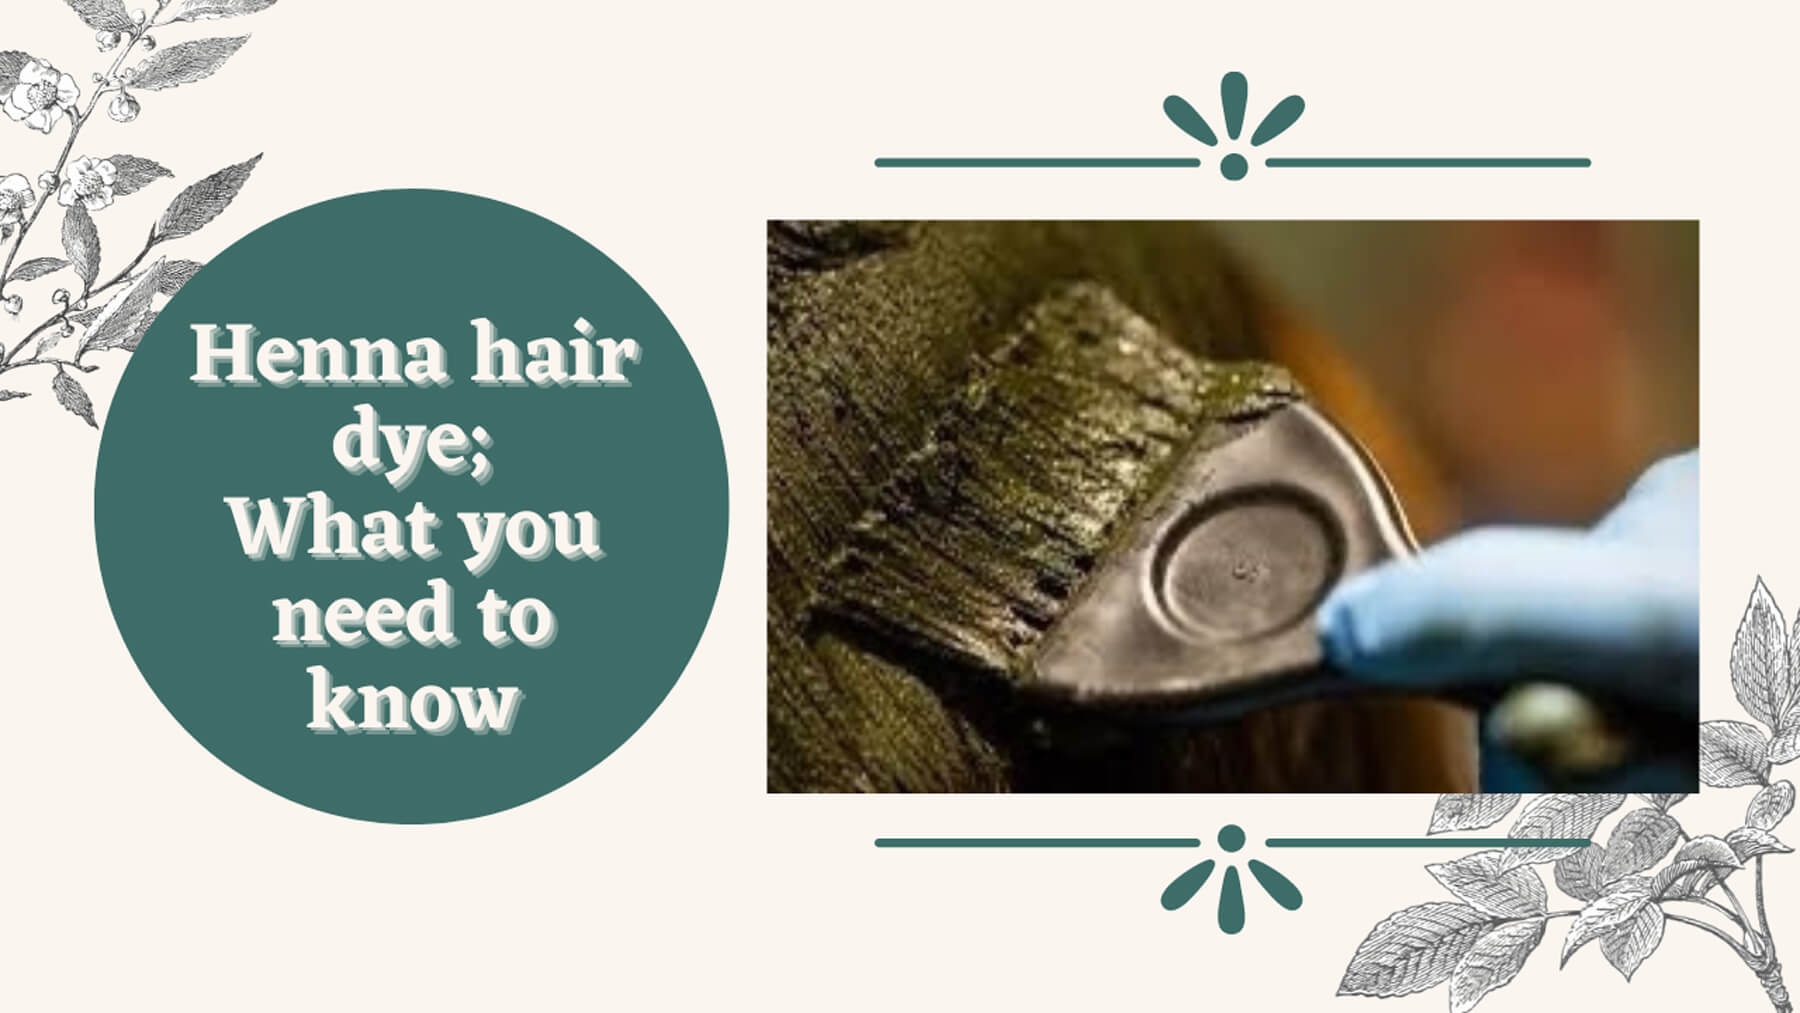 What You Need to Know About Henna Hair Dye graphic